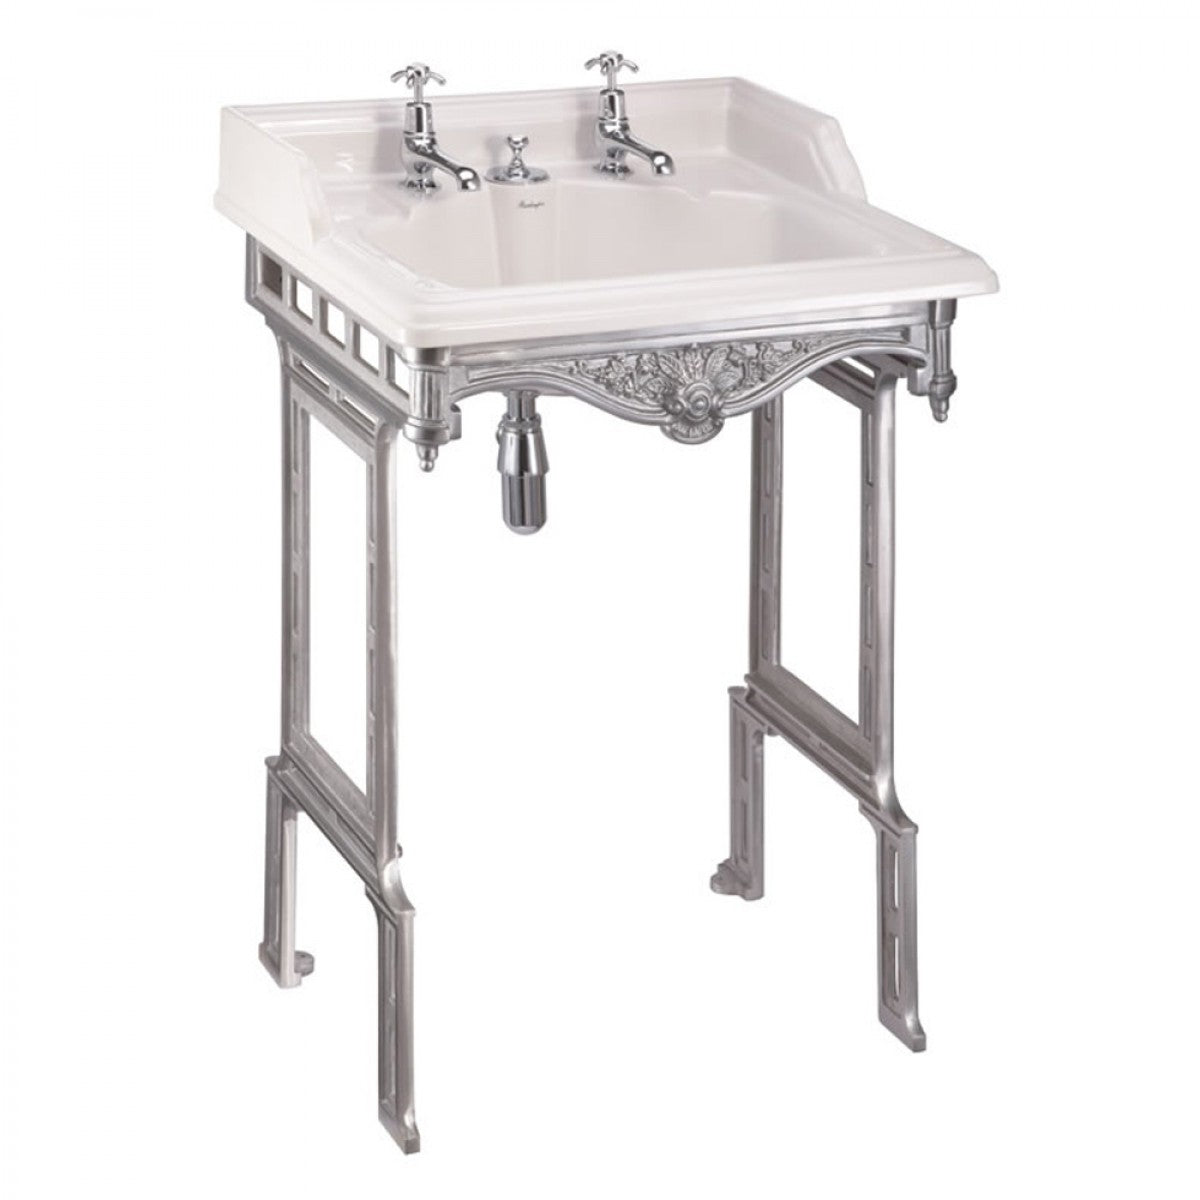 BURLINGTON CLASSIC BASIN WITH ALUMINIUM WASH STAND & INVISIBLE OVERFLOW